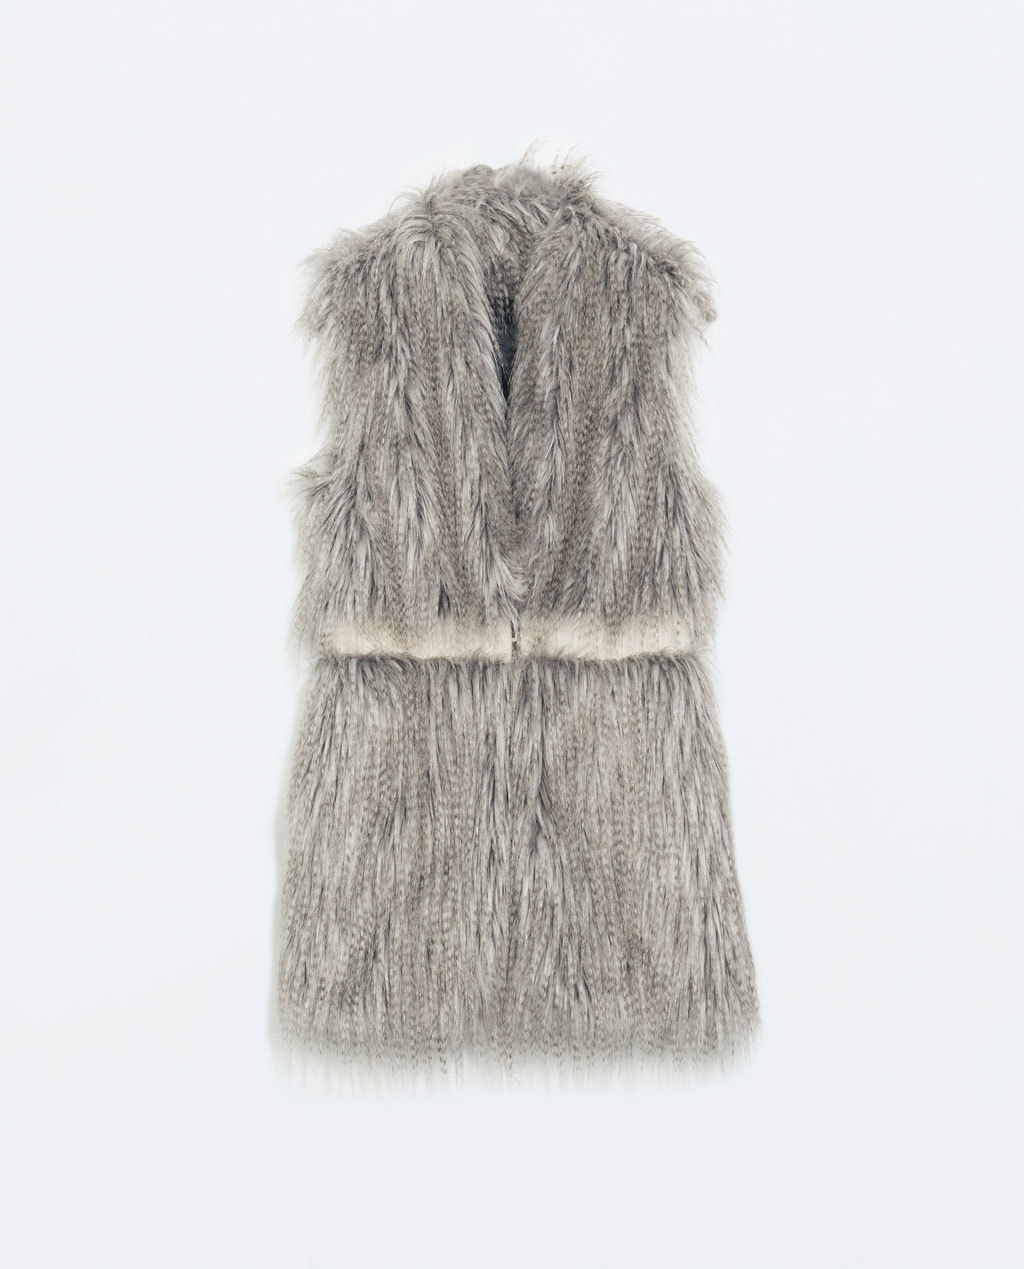 Fur Vest With Waist Seam - pattern: plain; sleeve style: sleeveless; style: gilet; collar: round collar/collarless; length: below the bottom; predominant colour: mid grey; occasions: casual, evening, creative work; fit: straight cut (boxy); fibres: acrylic - mix; sleeve length: sleeveless; texture group: fur; collar break: medium; pattern type: fabric; season: a/w 2014; trends: warm and fuzzy